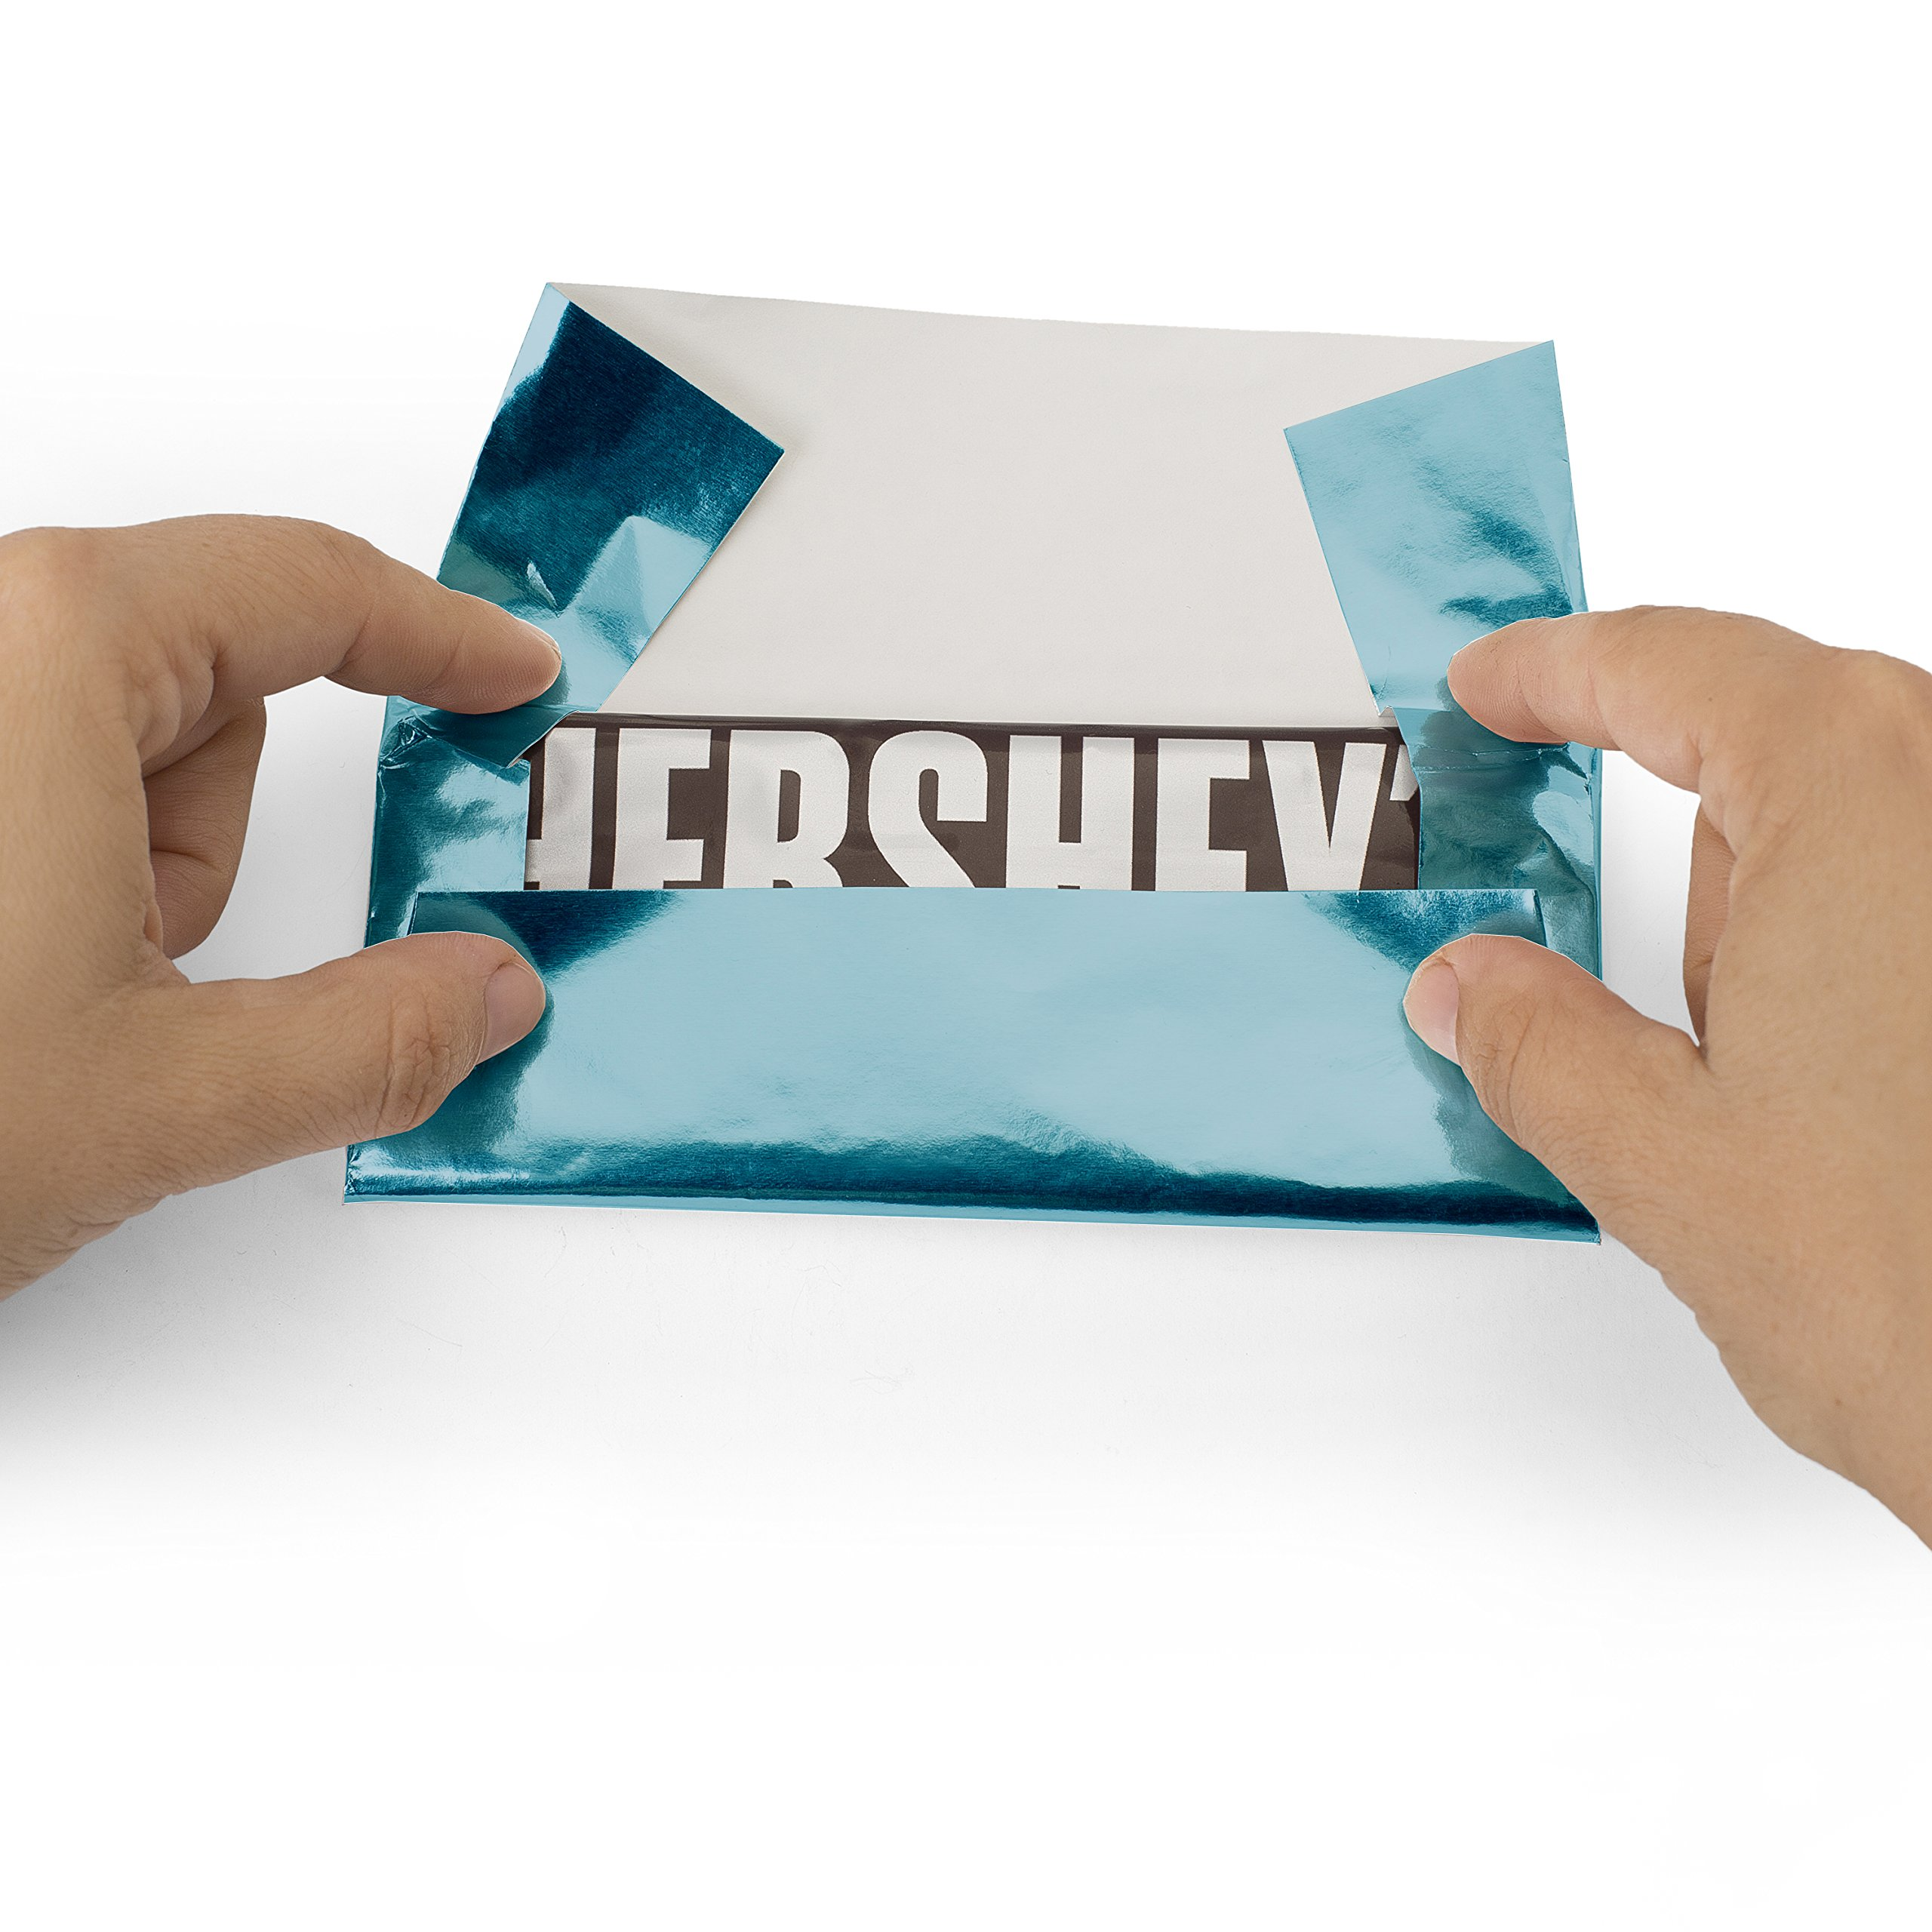 Foil Wrapper (Baby Blue) - Pack of 100 Candy Bar Wrappers with Thick Paper Backing - Folds and Wraps Well - Best for Wrapping 1.55Oz Hershey/ Candies/ Chocolate Bars/ Gifts - Size 6'' X 7.5''